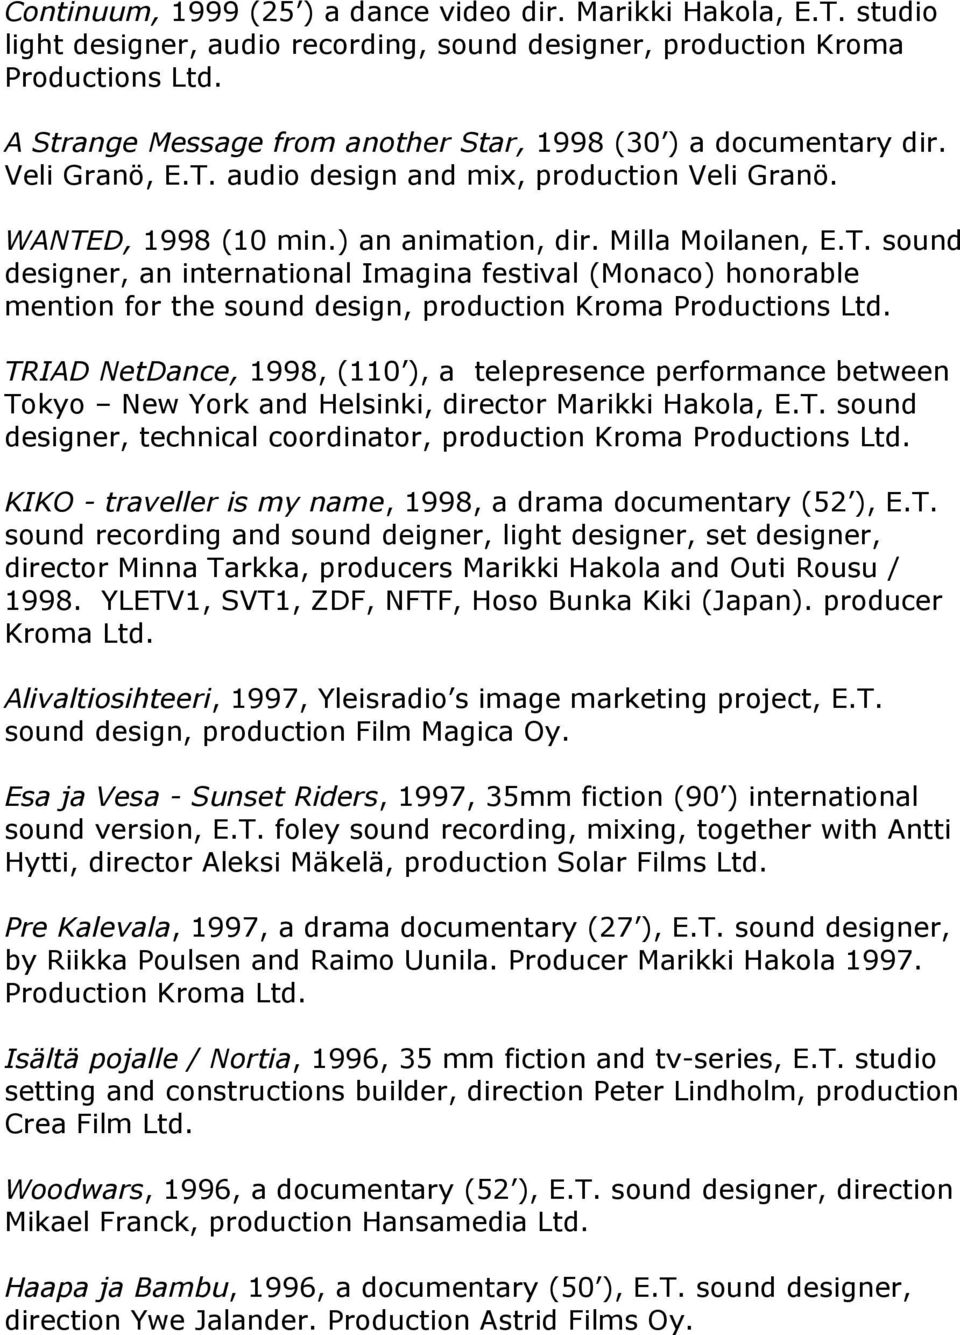 audio design and mix, production Veli Granö. WANTED, 1998 (10 min.) an animation, dir. Milla Moilanen, E.T. sound designer, an international Imagina festival (Monaco) honorable mention for the sound design, production Kroma Productions Ltd.